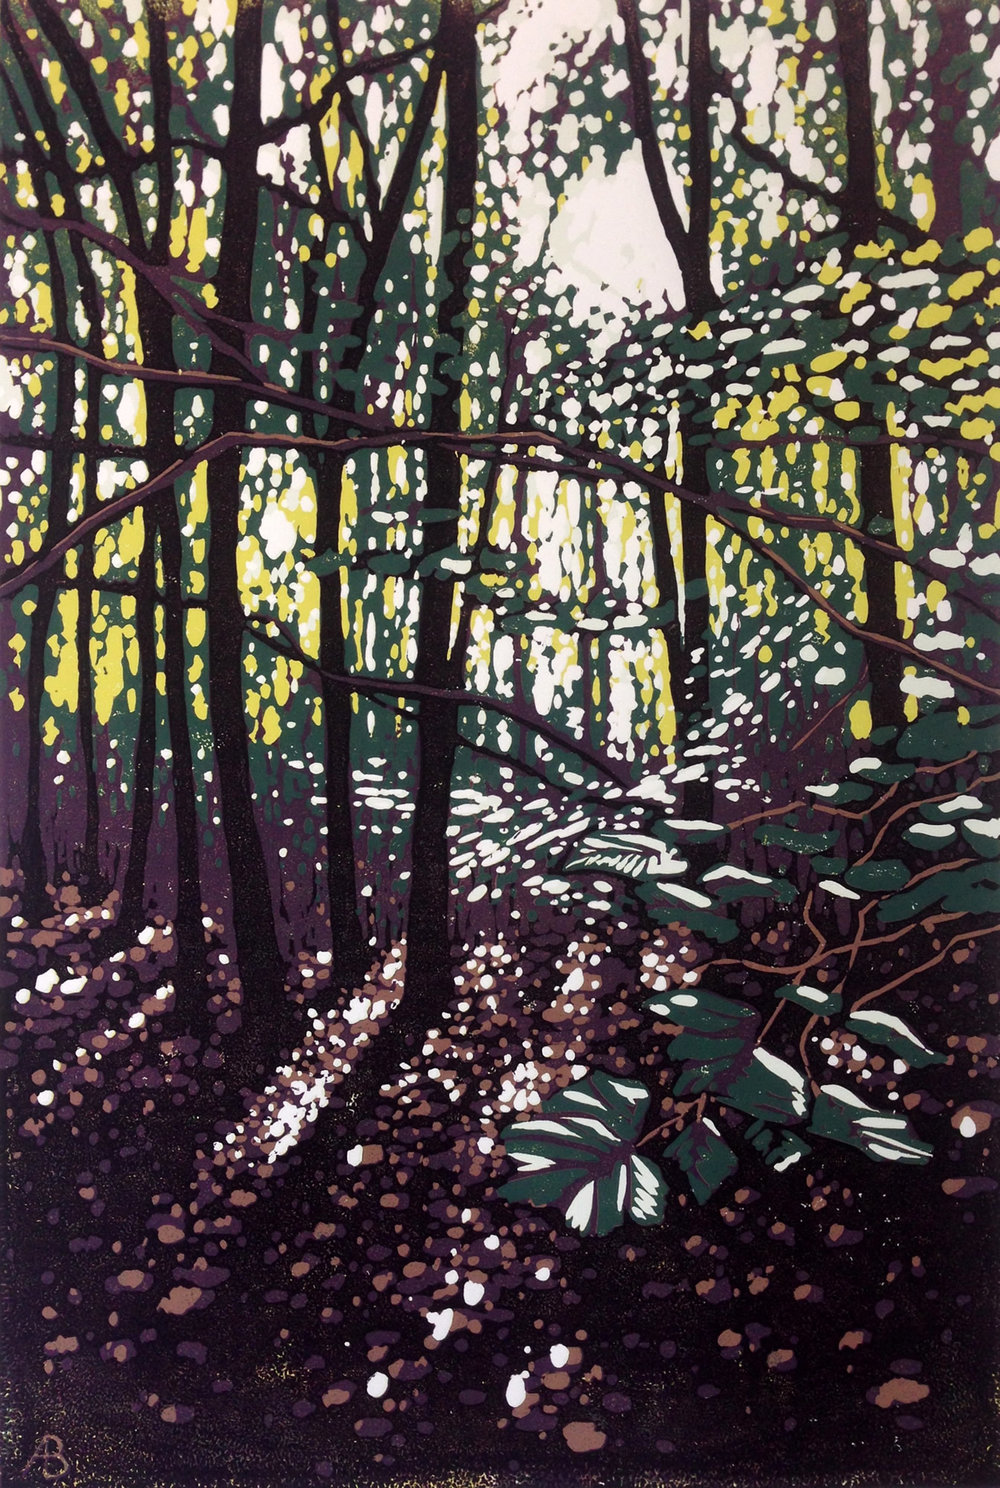 Summer Woodland Glow | 40cm x 60cm Reduction Linocut